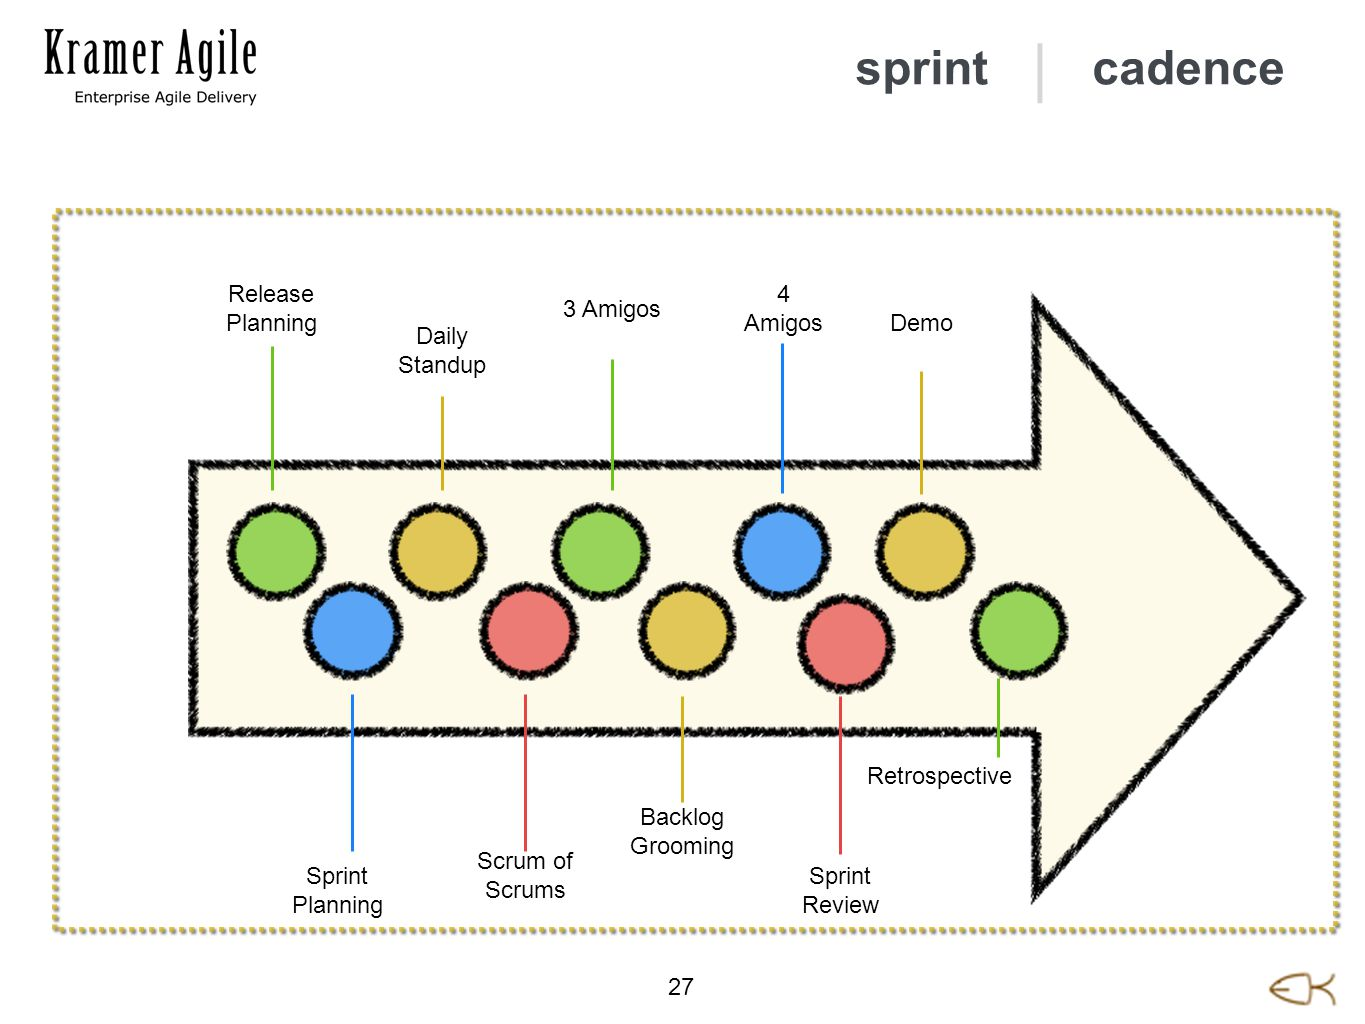 | 27 cadence Release Planning Sprint Planning Daily Standup Scrum of Scrums 3 Amigos Backlog Grooming 4 Amigos Sprint Review Demo Retrospective sprint